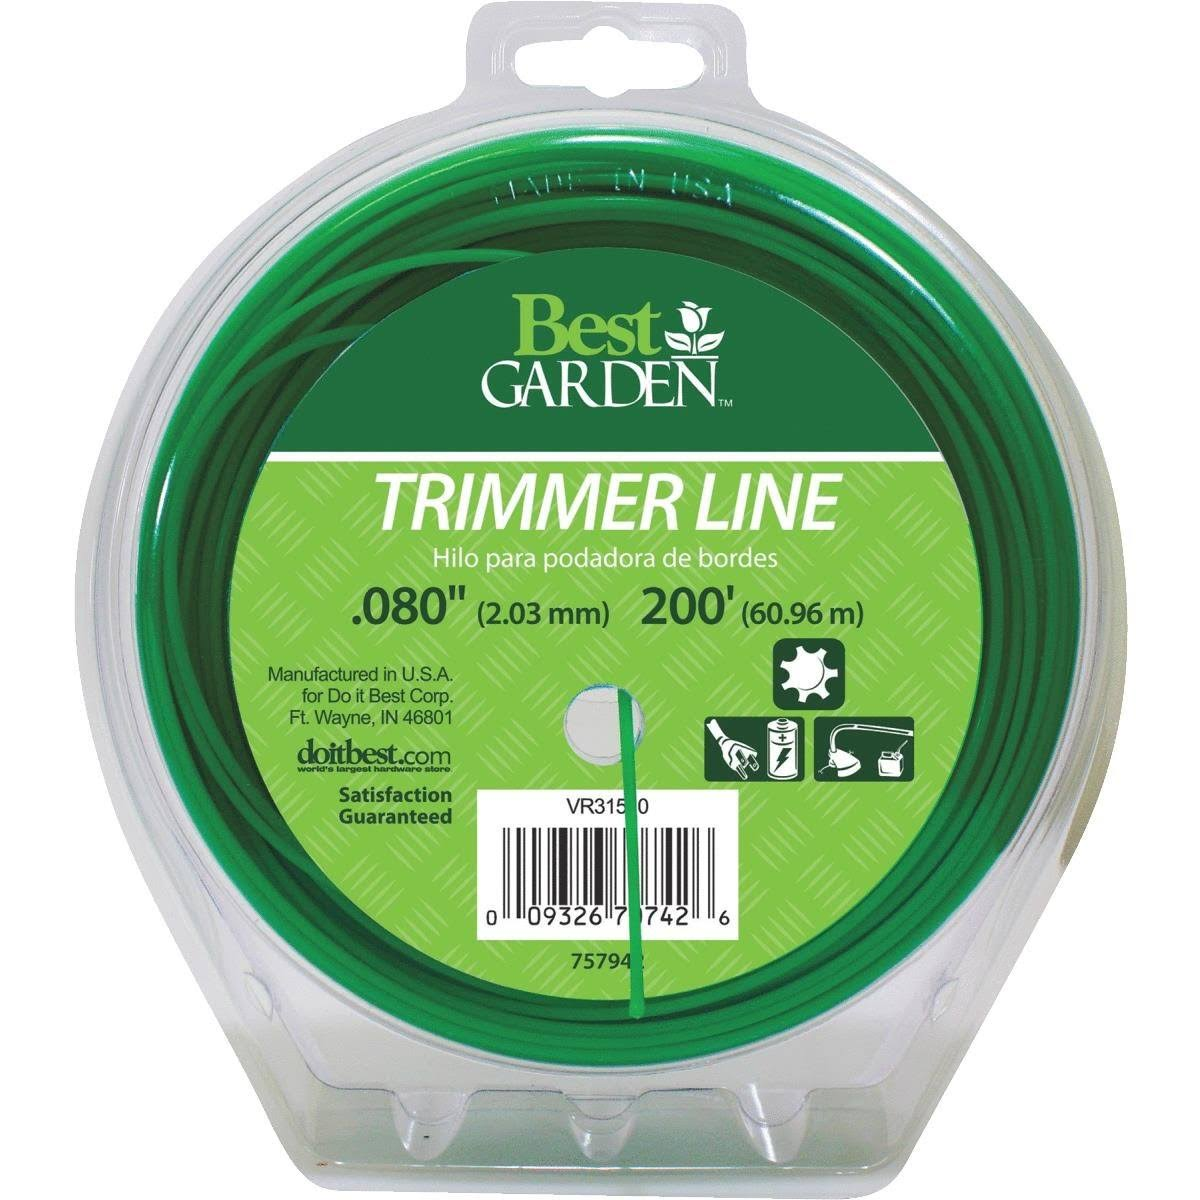 Do it Best Shakespeare Mono Trimmer Line - 200'